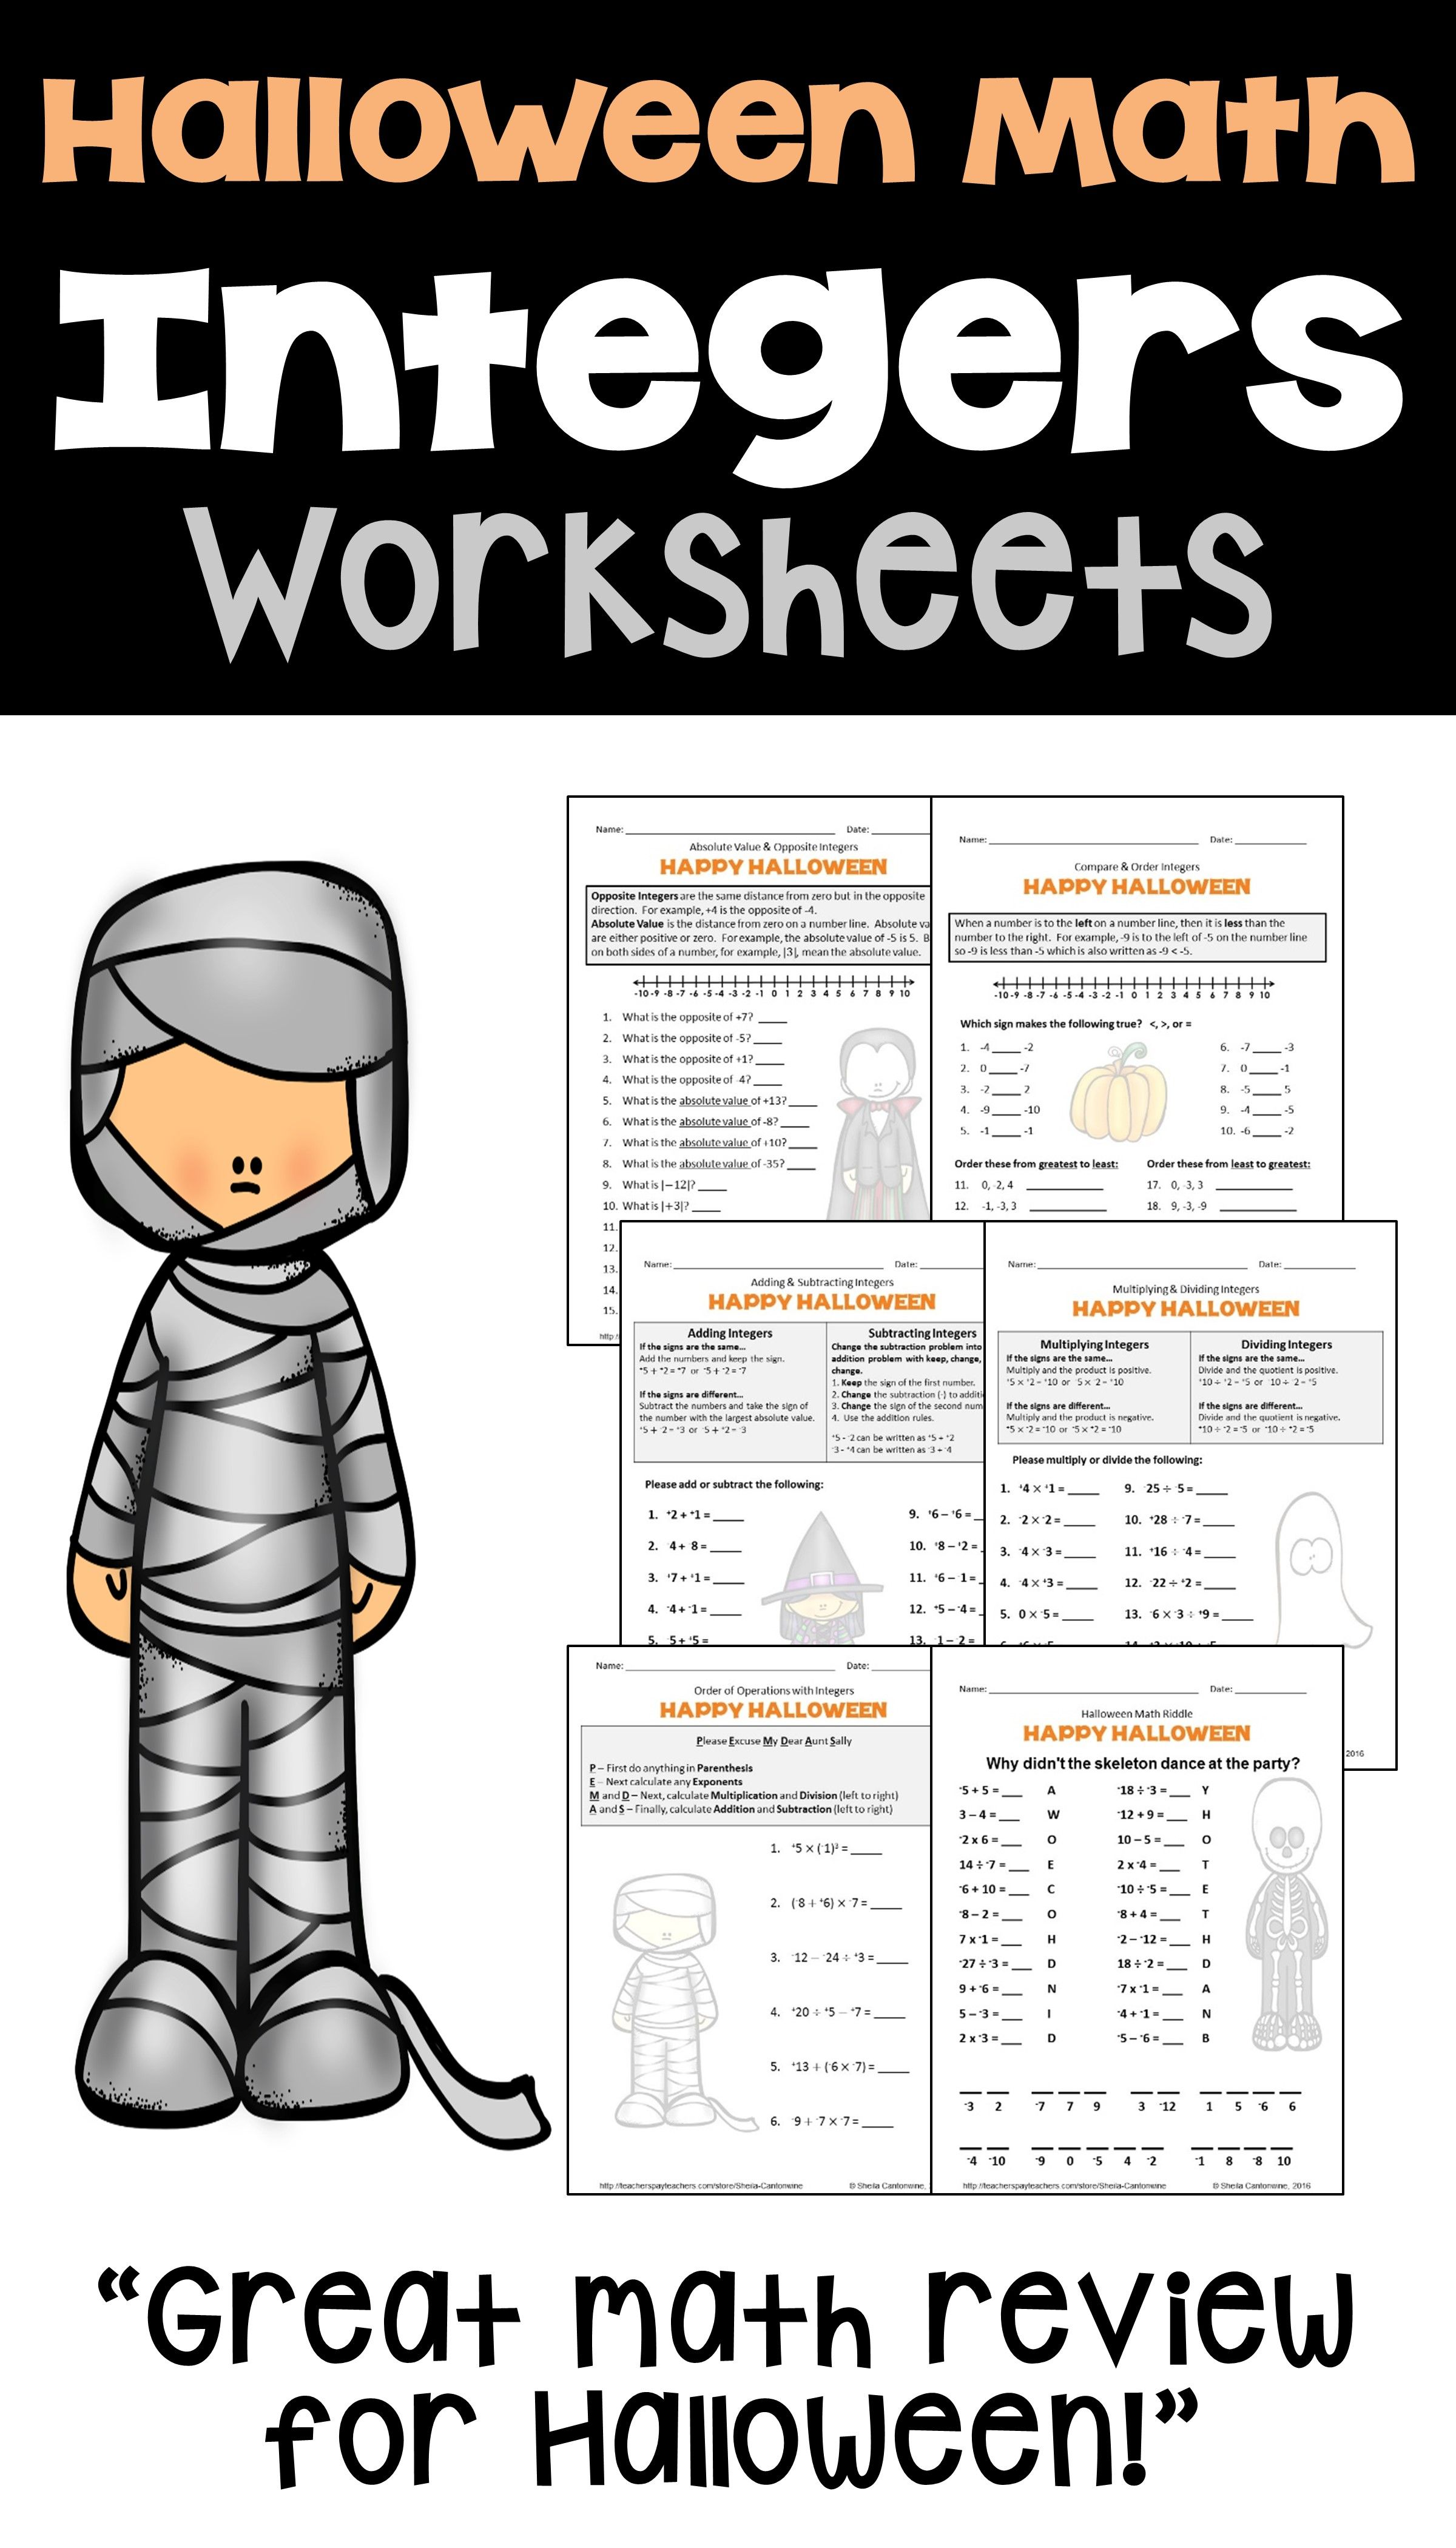 Halloween Math Is Fun For Kids With These Printable Integer Worksheets For 6th 7th And 7th Halloween Math Worksheets Halloween Math Halloween Math Activities